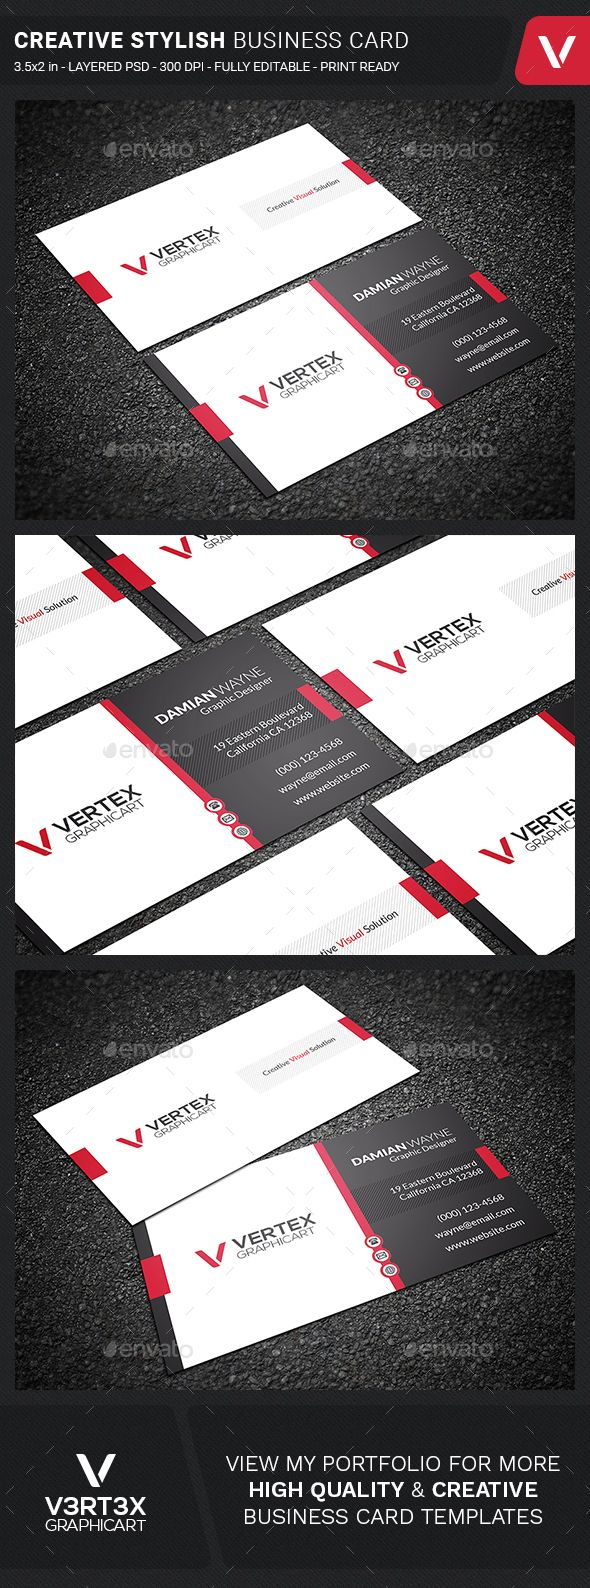 51 best card design images on pinterest graphics business card creative stylish business card template psd download here httpsgraphicriver reheart Choice Image